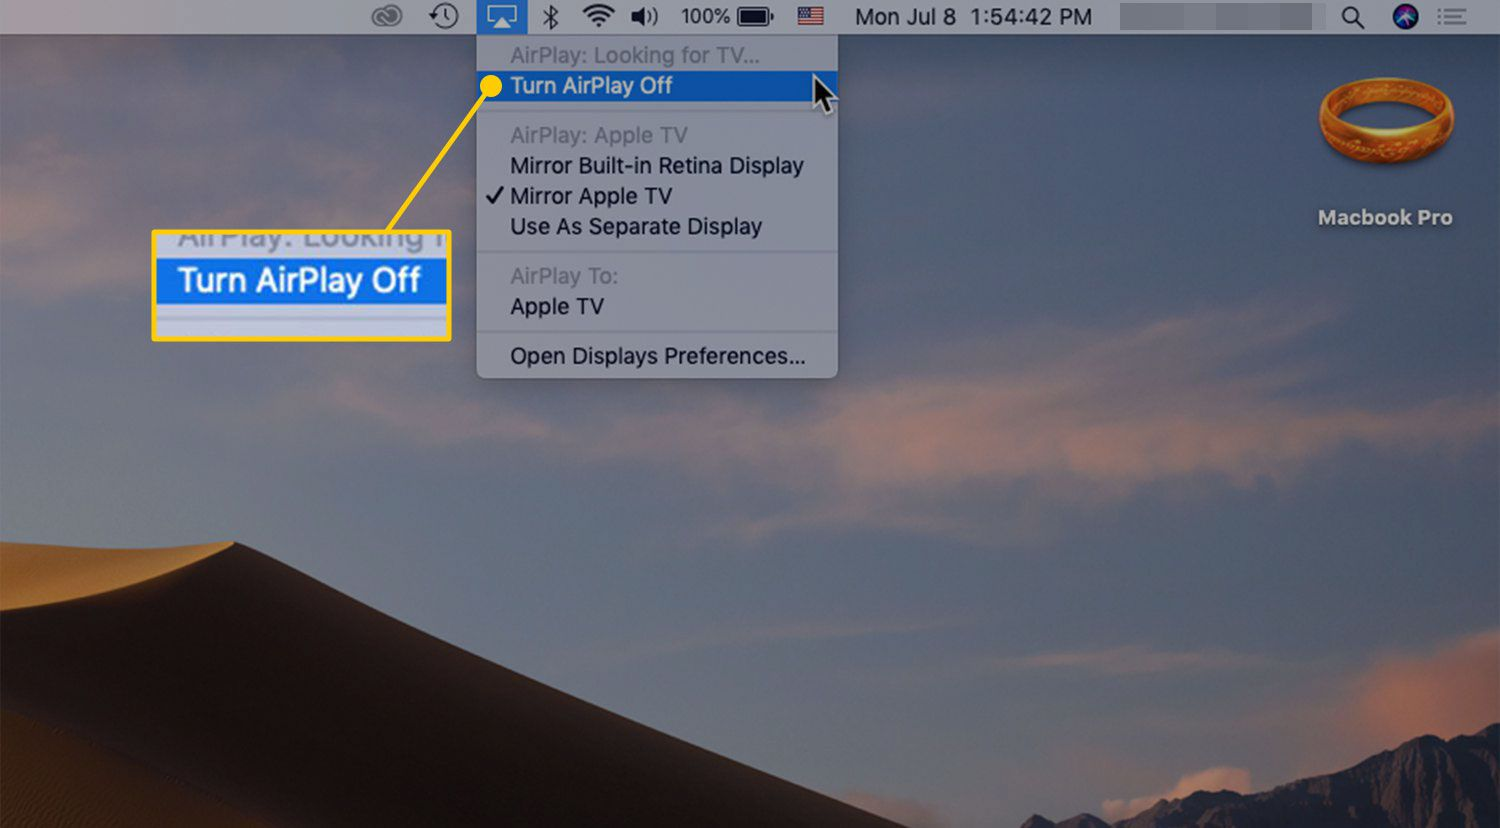 Turn AirPlay Off command in macOS